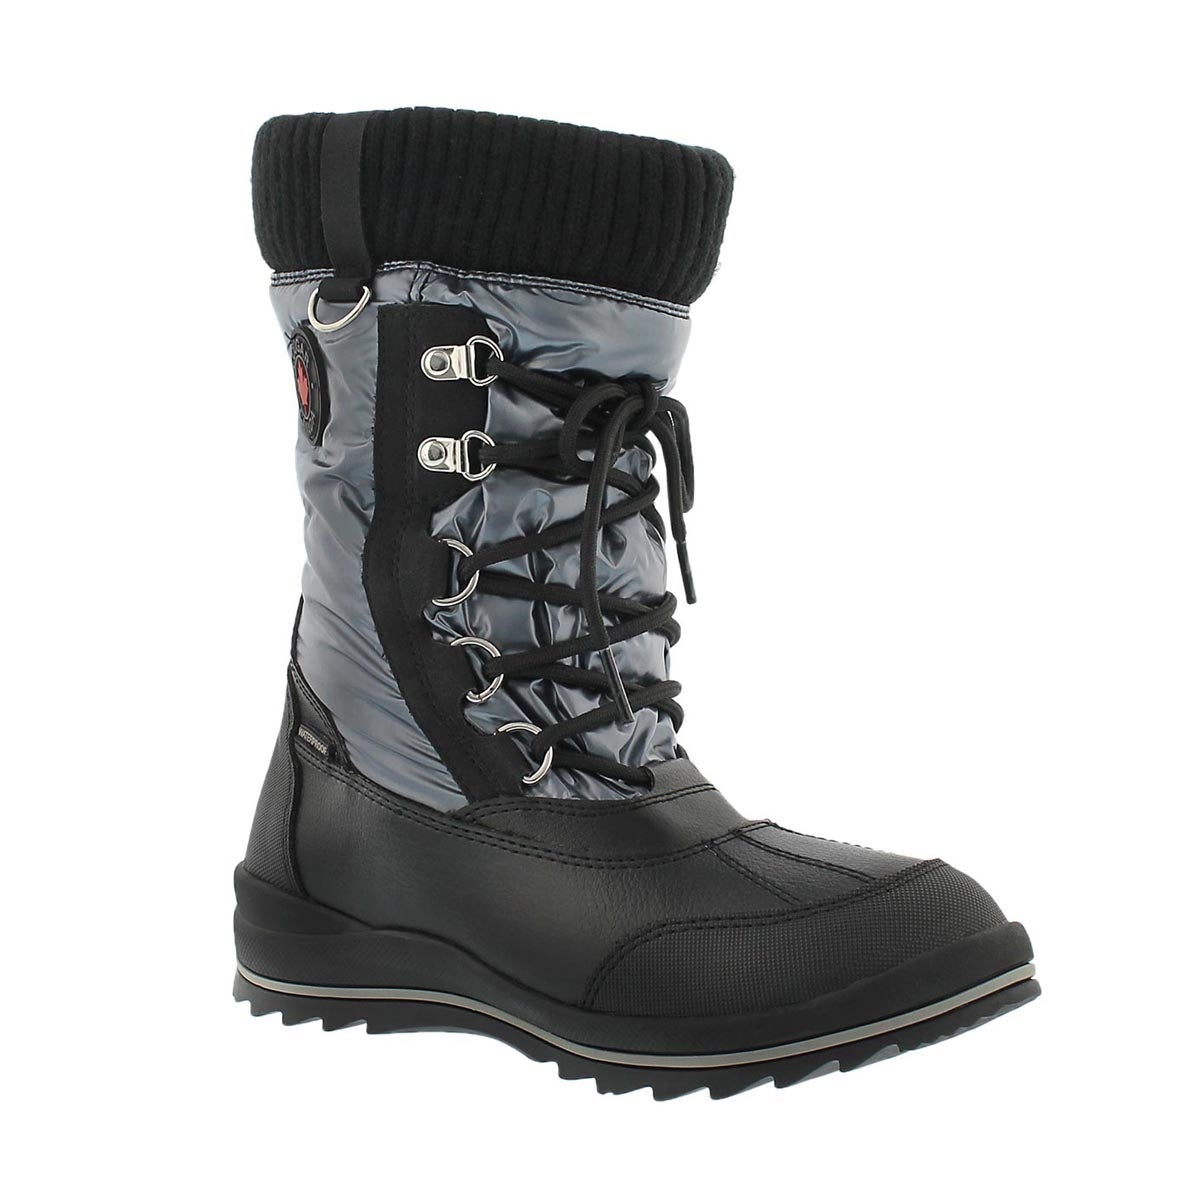 Girls' COMO grey waterproof pull on winter boots